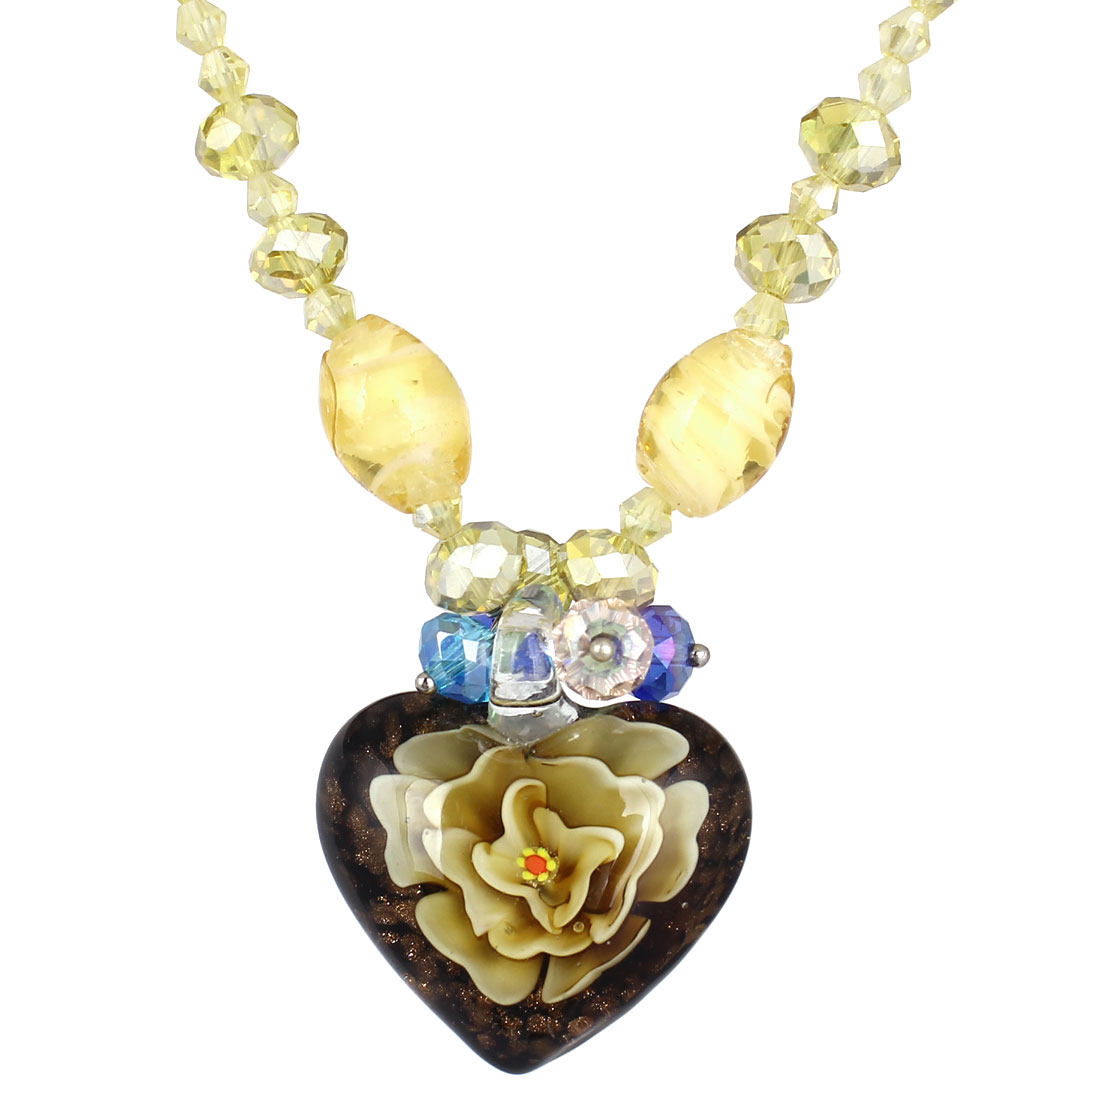 Yellow Rhinestone Inlaid Neck String Heart Flower Glass Pendant Necklace for Woman